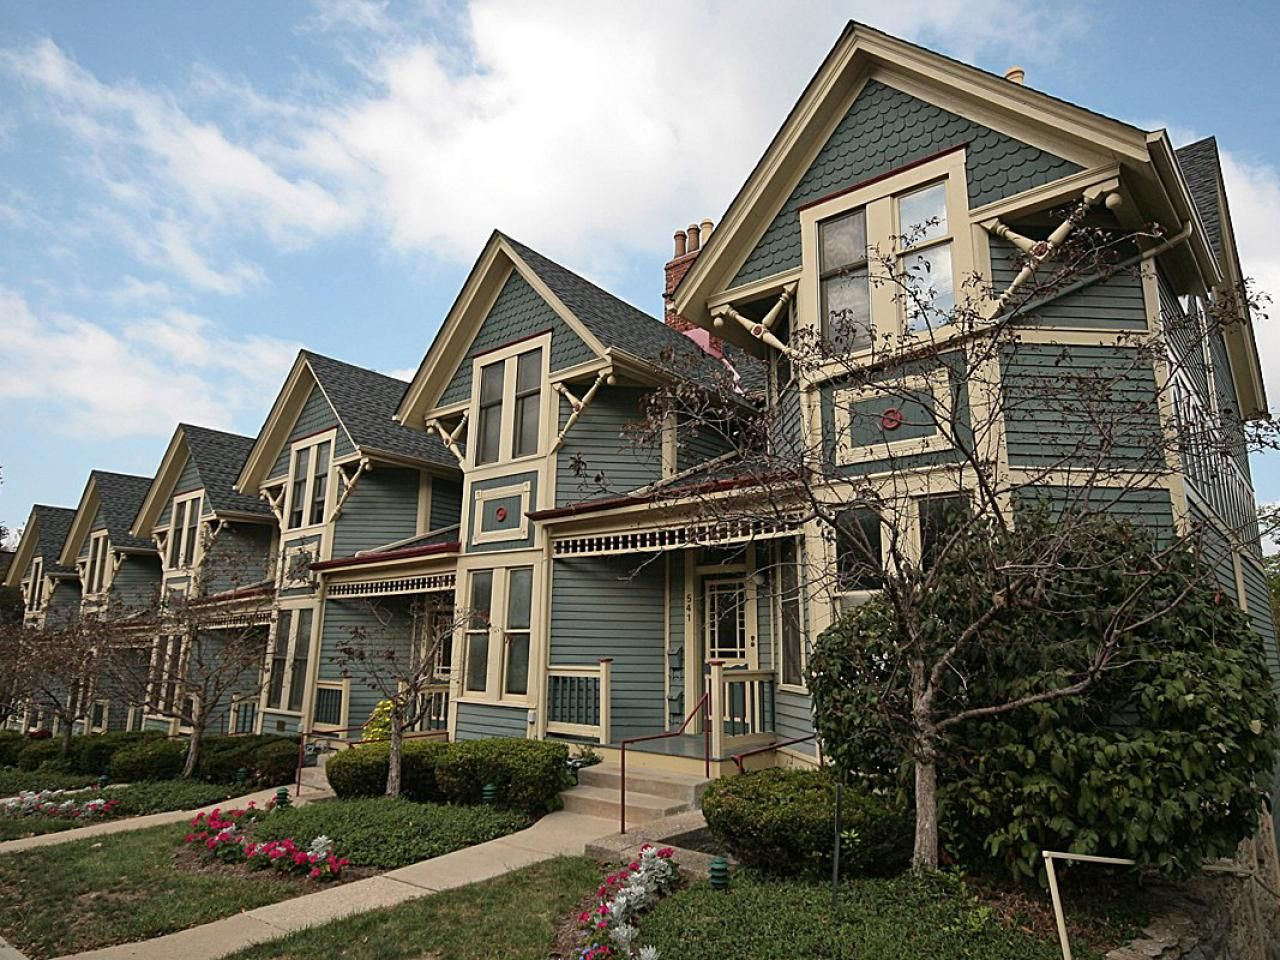 26 Popular Architectural Home Styles   House styles, Row house ...